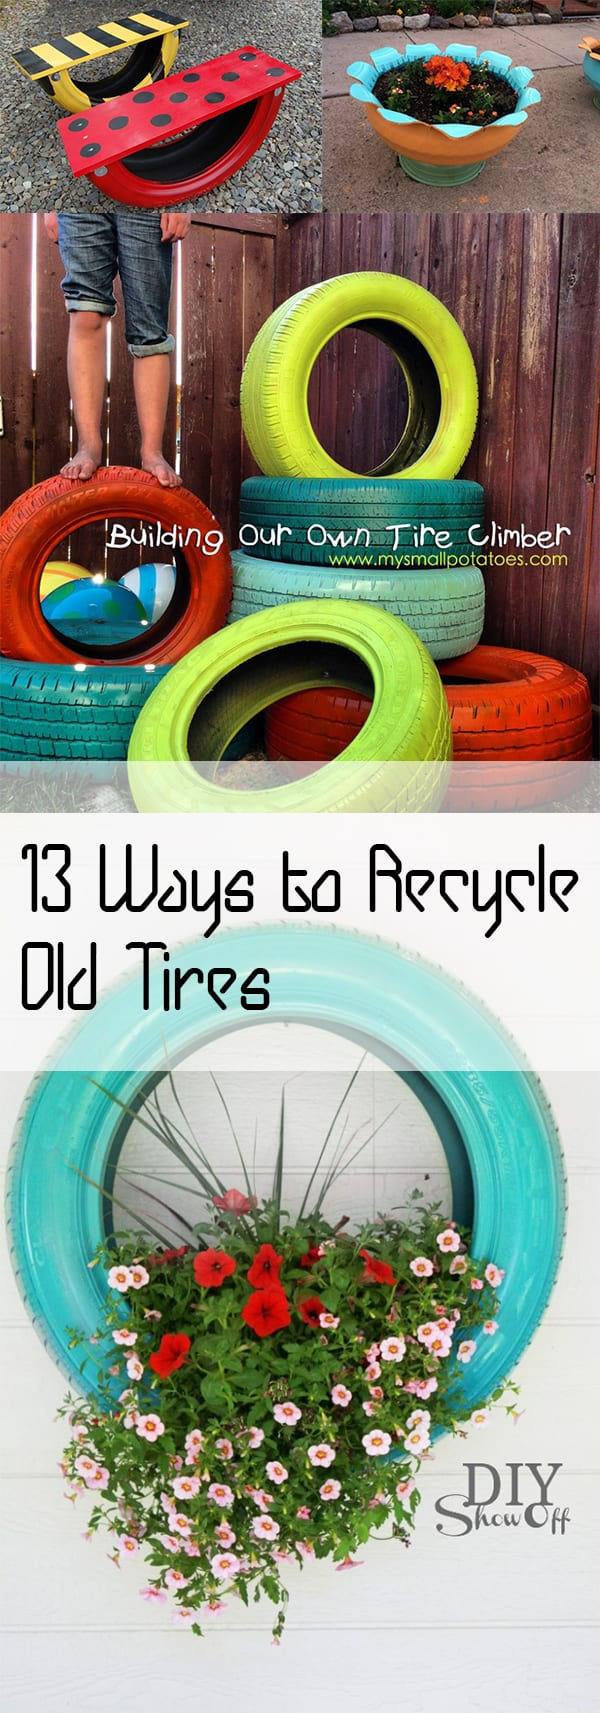 Recycle old tires, recycling projects, things to do with old tires, popular pin, easy DIY projects, tire repurpose projects, DIY garden projects, outdoor furniture projects.